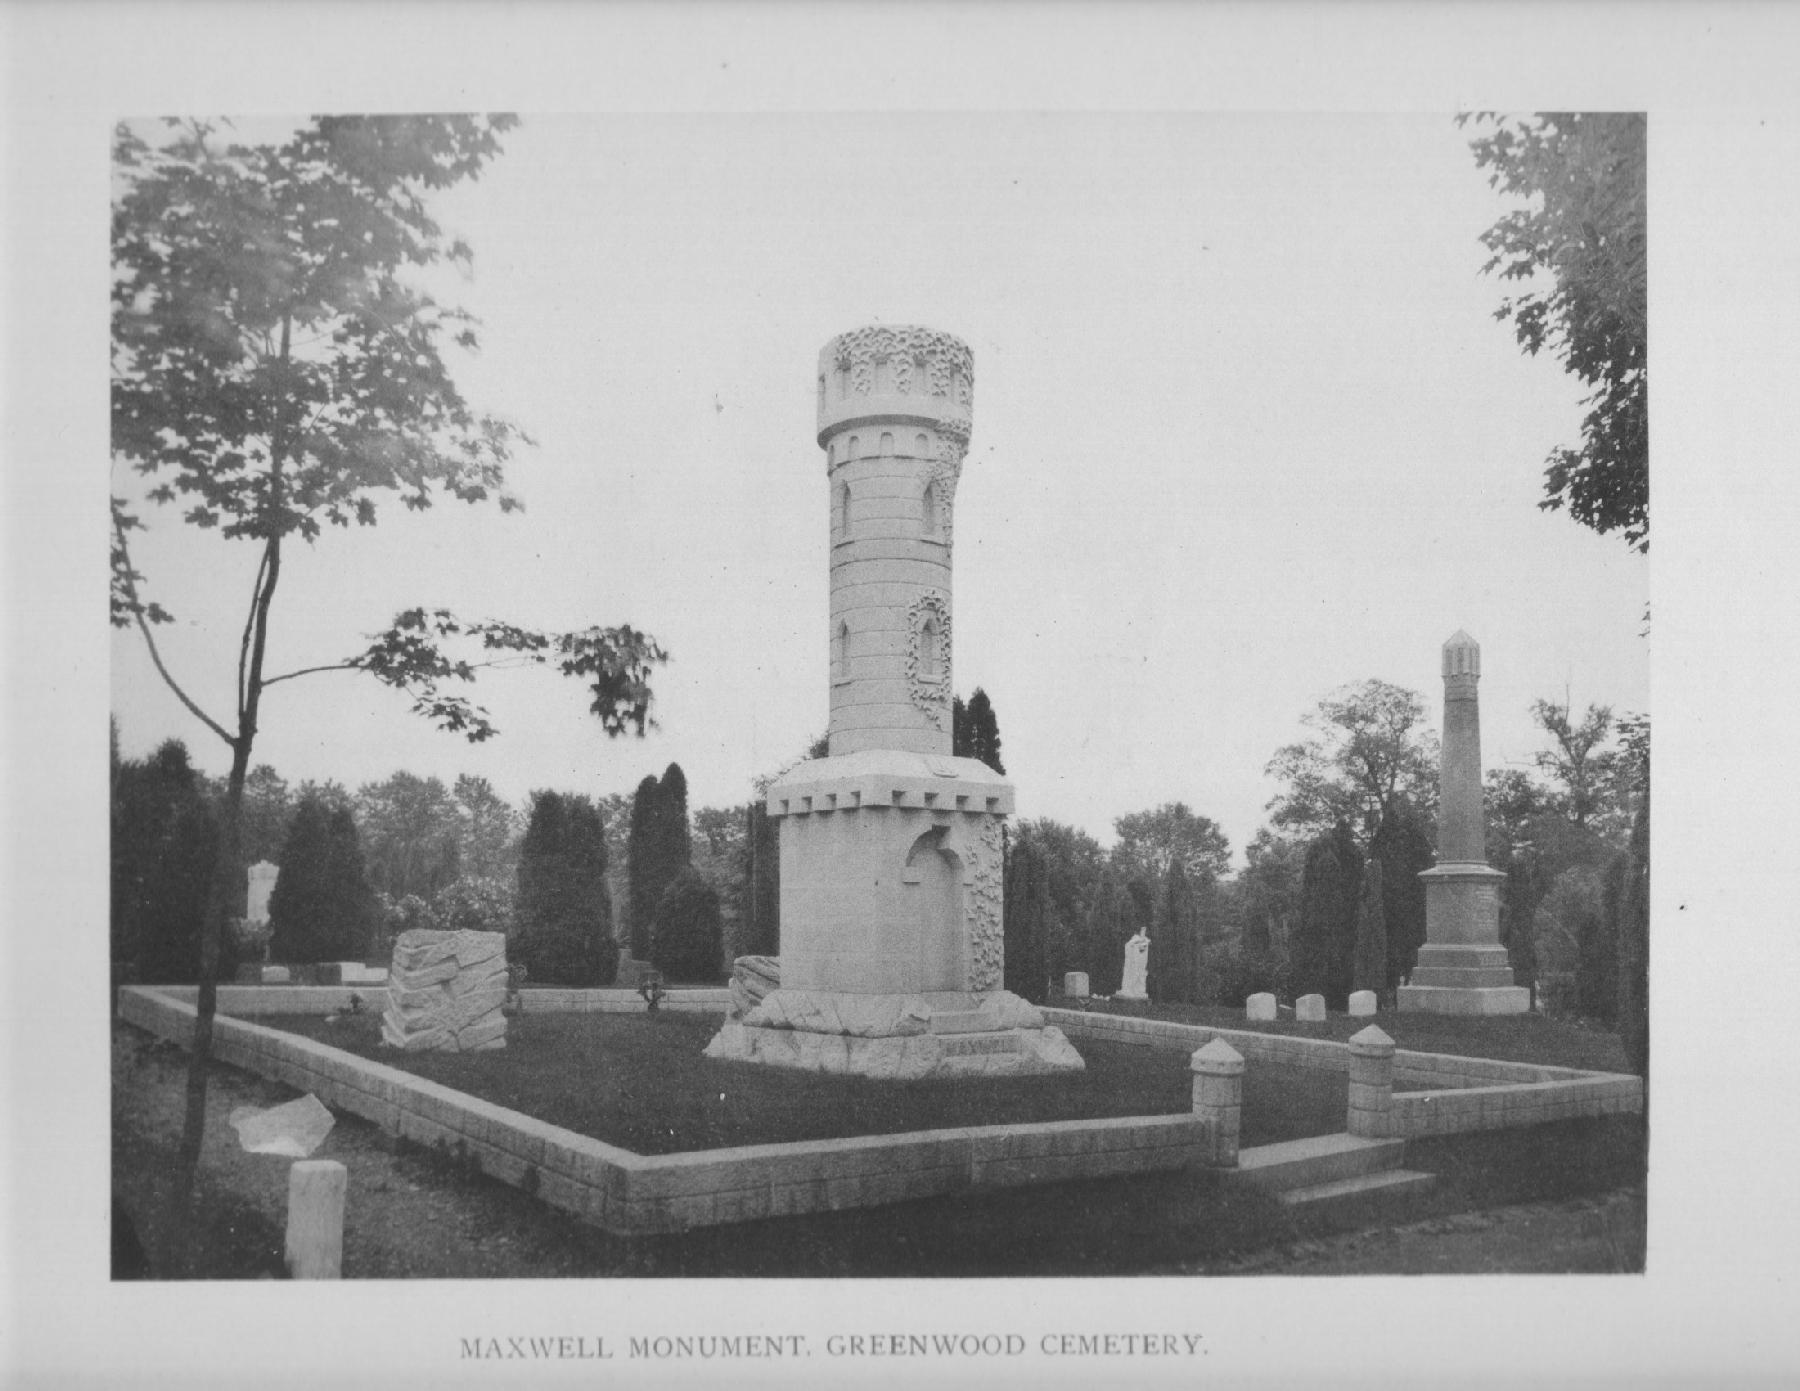 James Maxwell Monument in Greenwood Cemetery